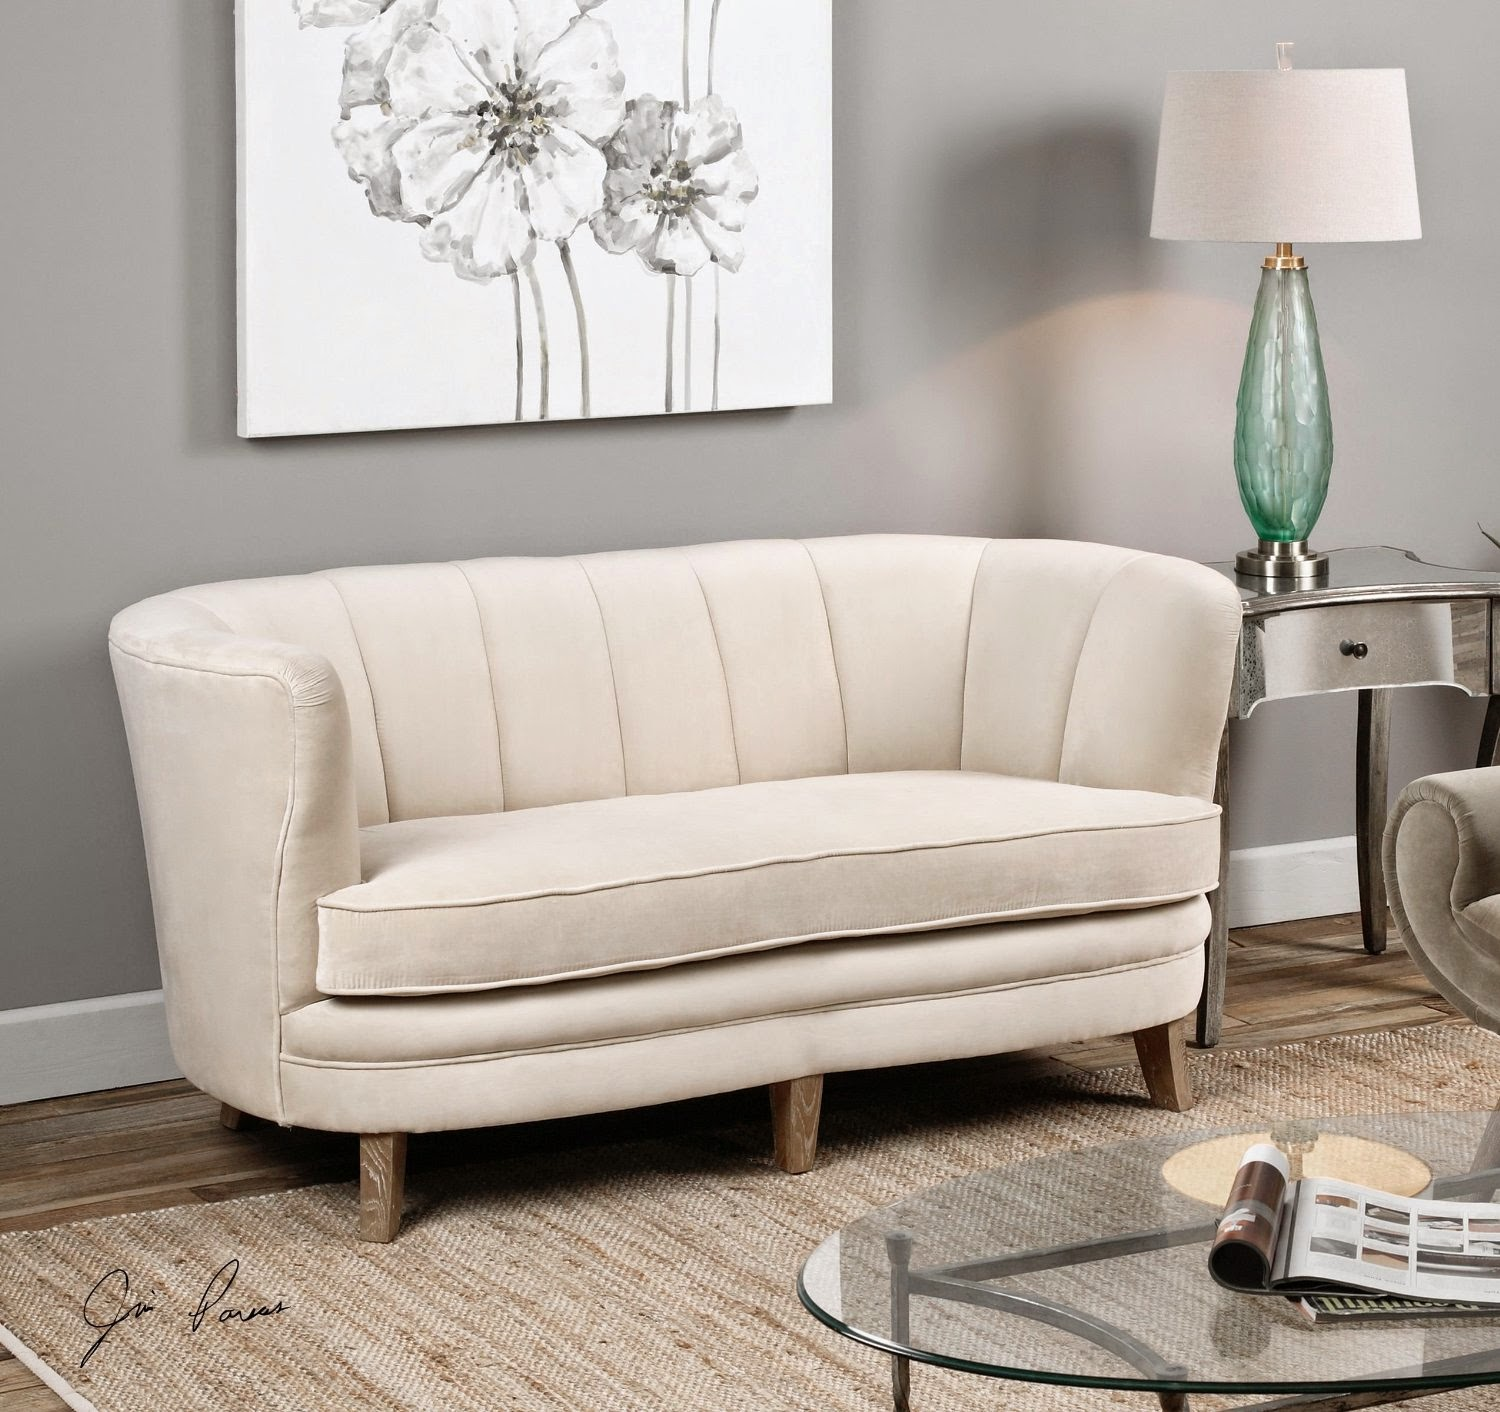 plush white velvet curved back sofa for sale